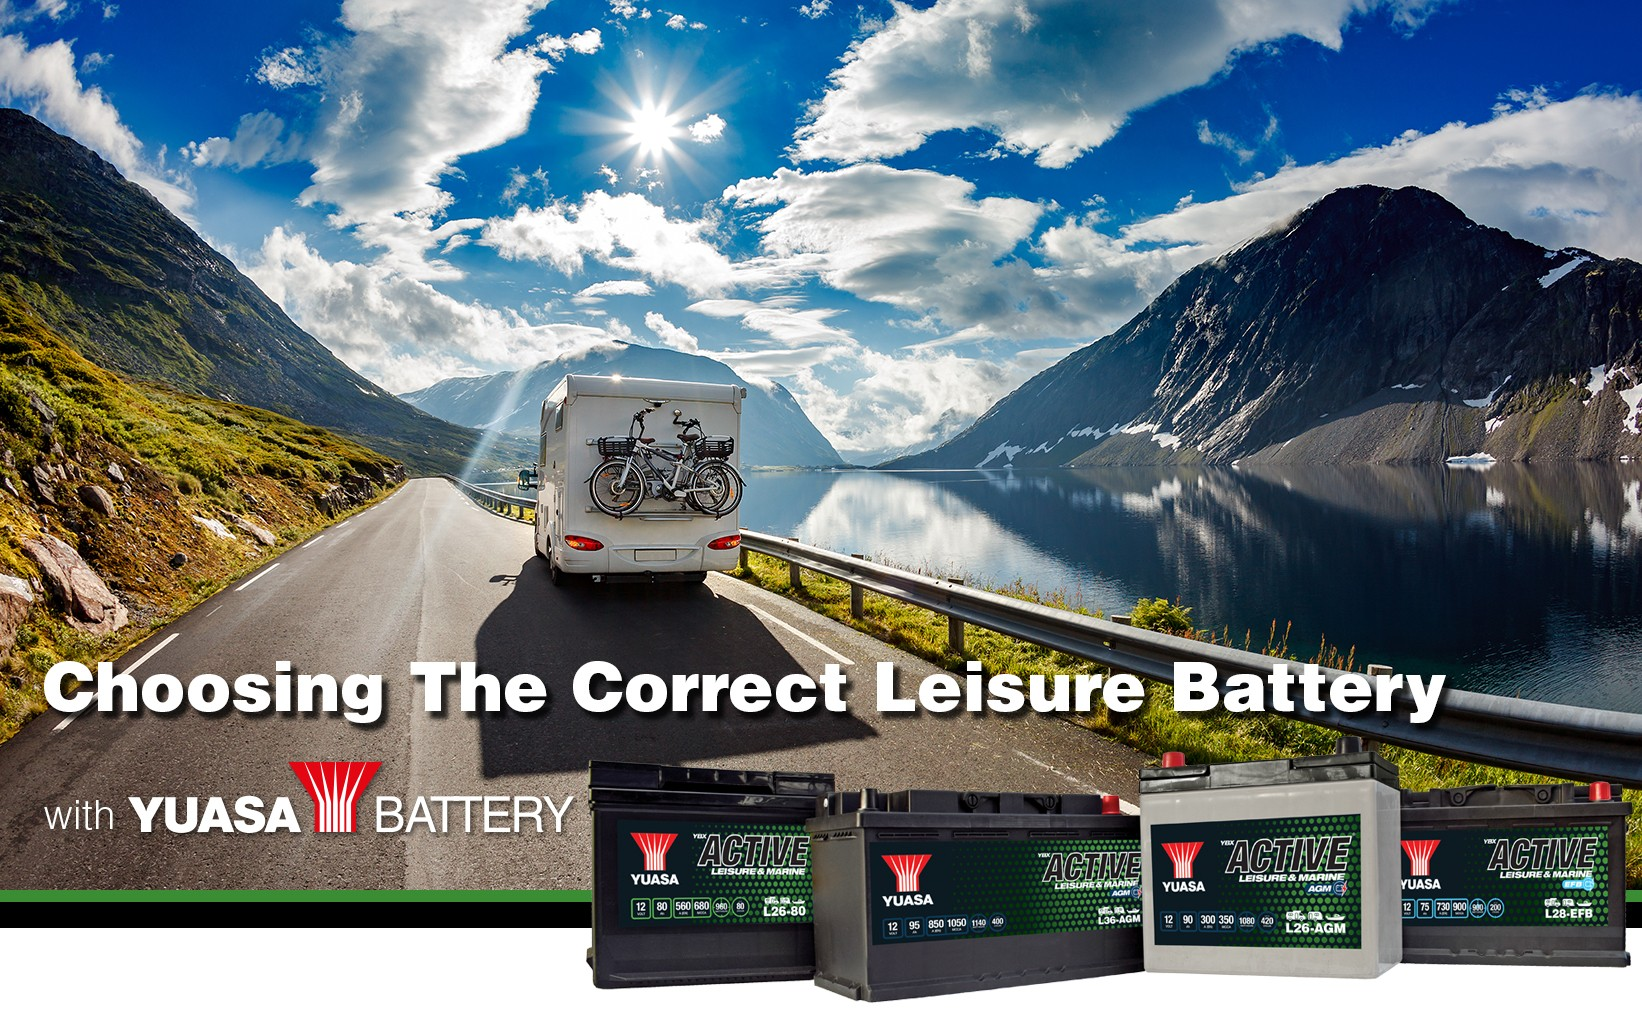 Choosing The Correct Leisure Battery